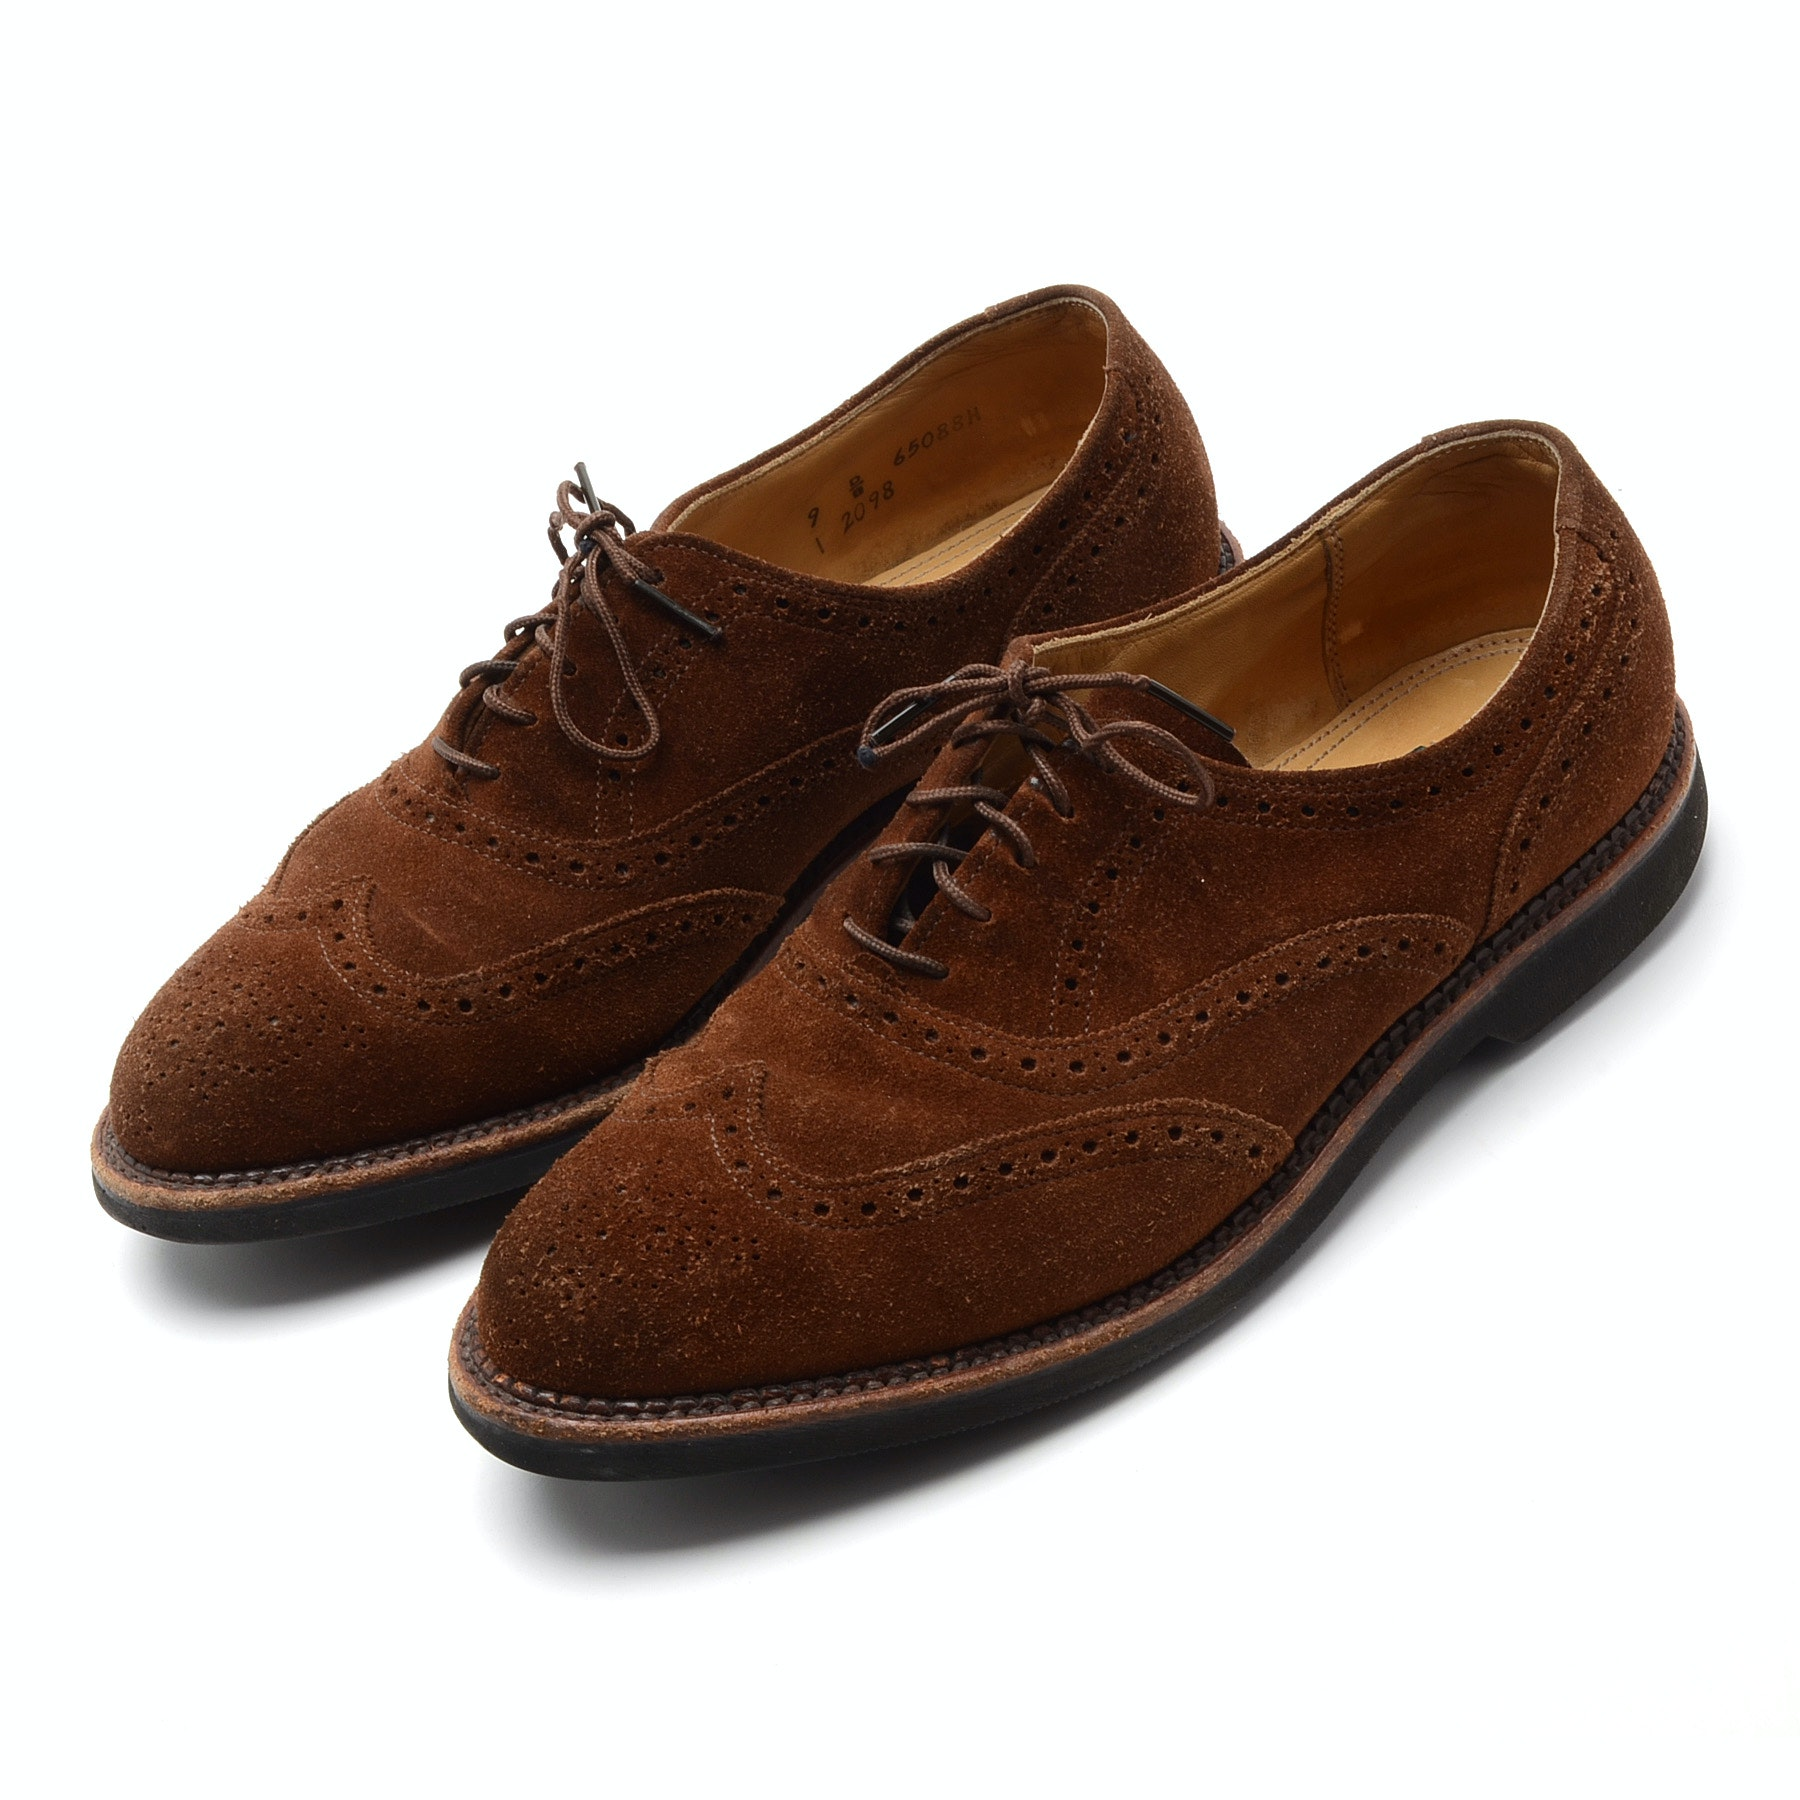 Men's Cole Haan Oxford Country Brown Suede Lace-Up Shoes